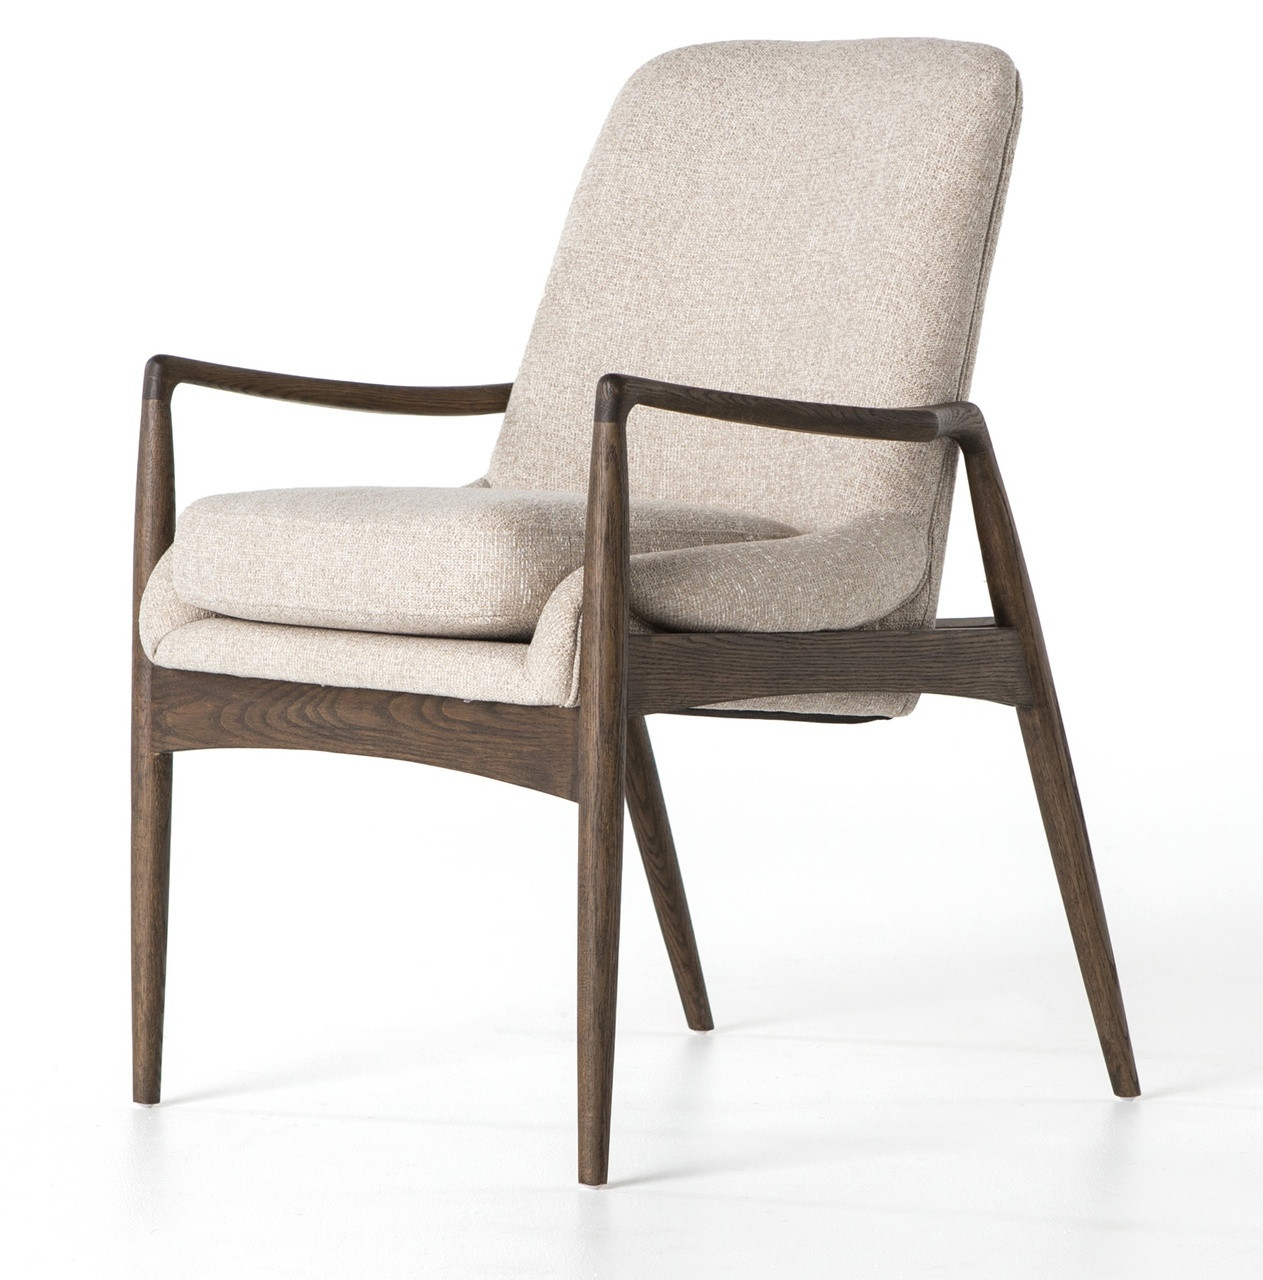 Upholstered Arm Chairs Braden Mid Century Modern Upholstered Dining Arm Chair